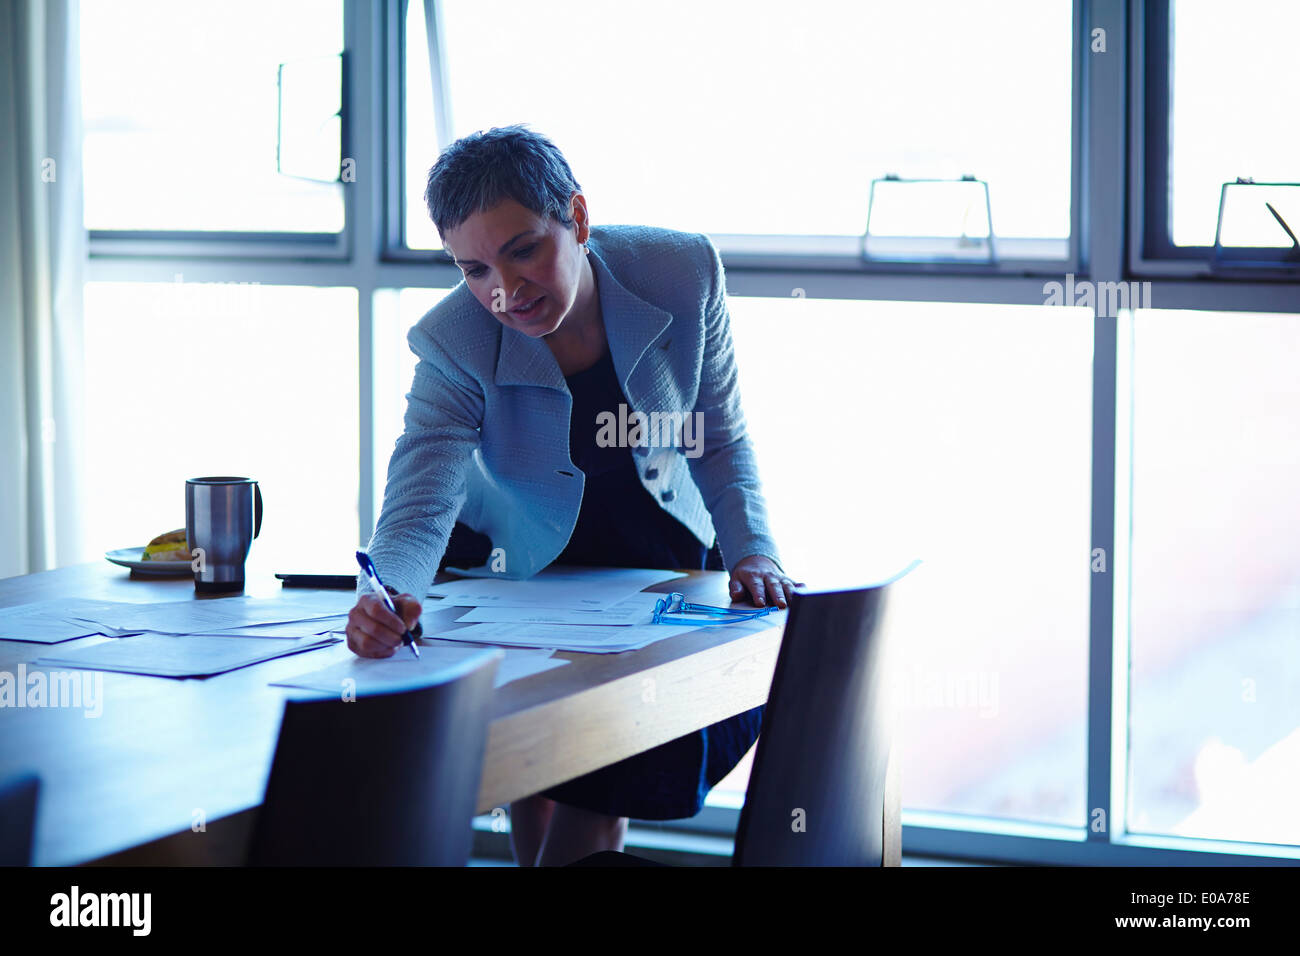 Mature businesswoman at conference table checking papers - Stock Image